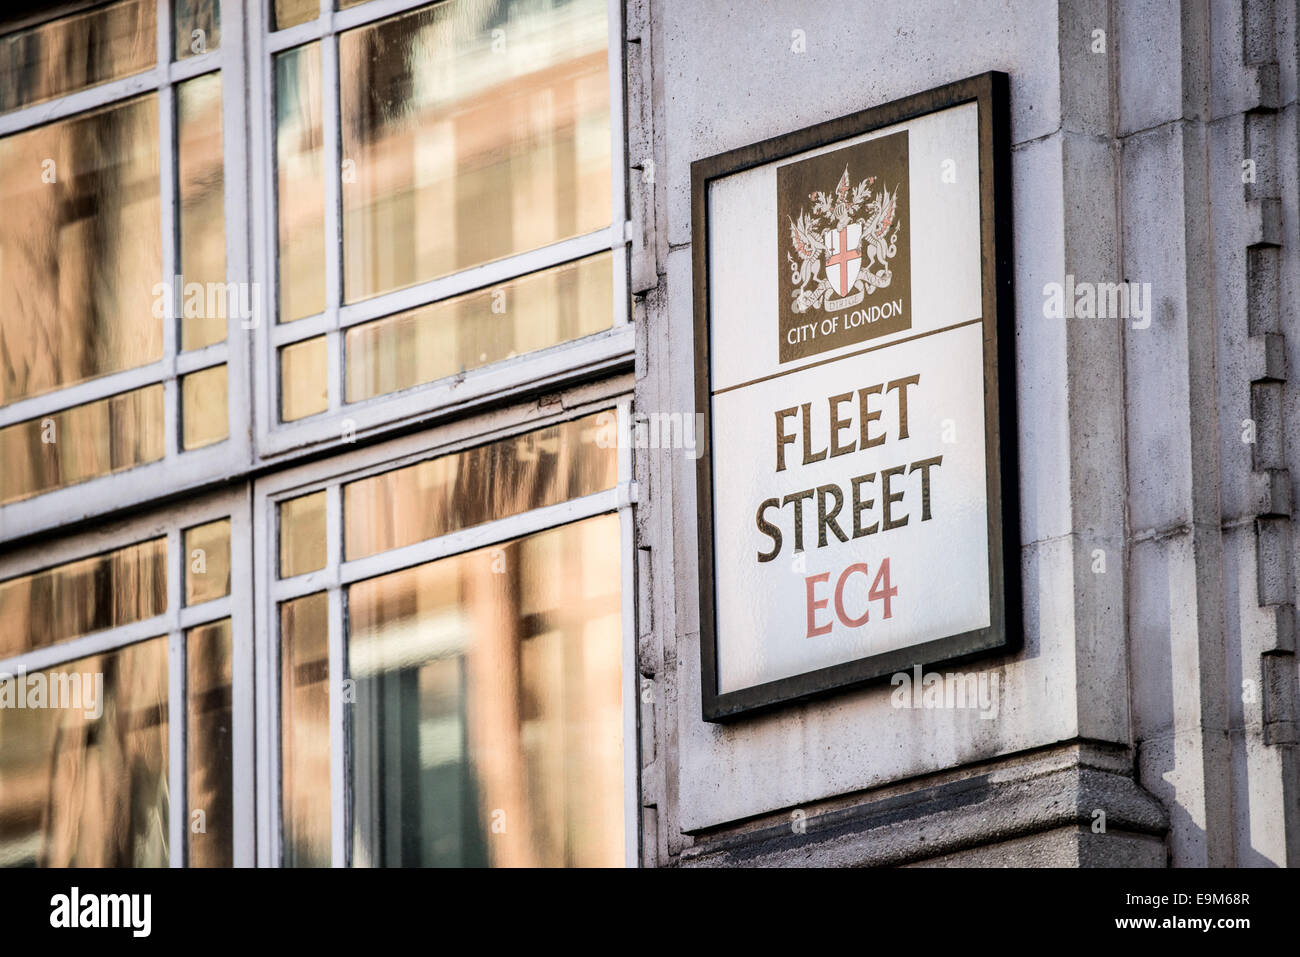 LONDON, UK - Signs marking Fleet Street in London, the traditional location of the UK's newspapers and media - Stock Image